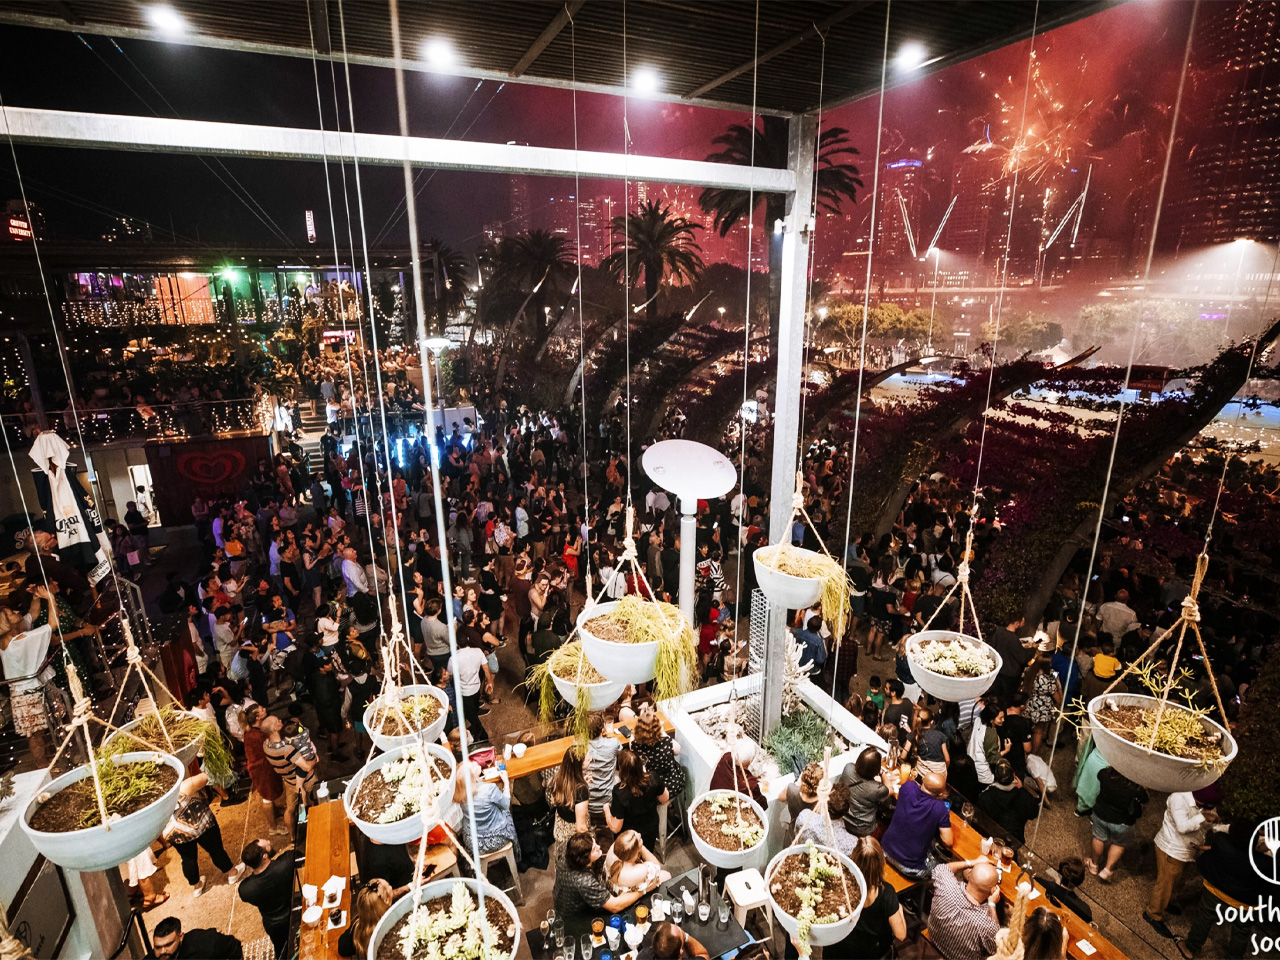 The Lookout venue in the evening with hanging pots and crowd overlooking city with fireworks